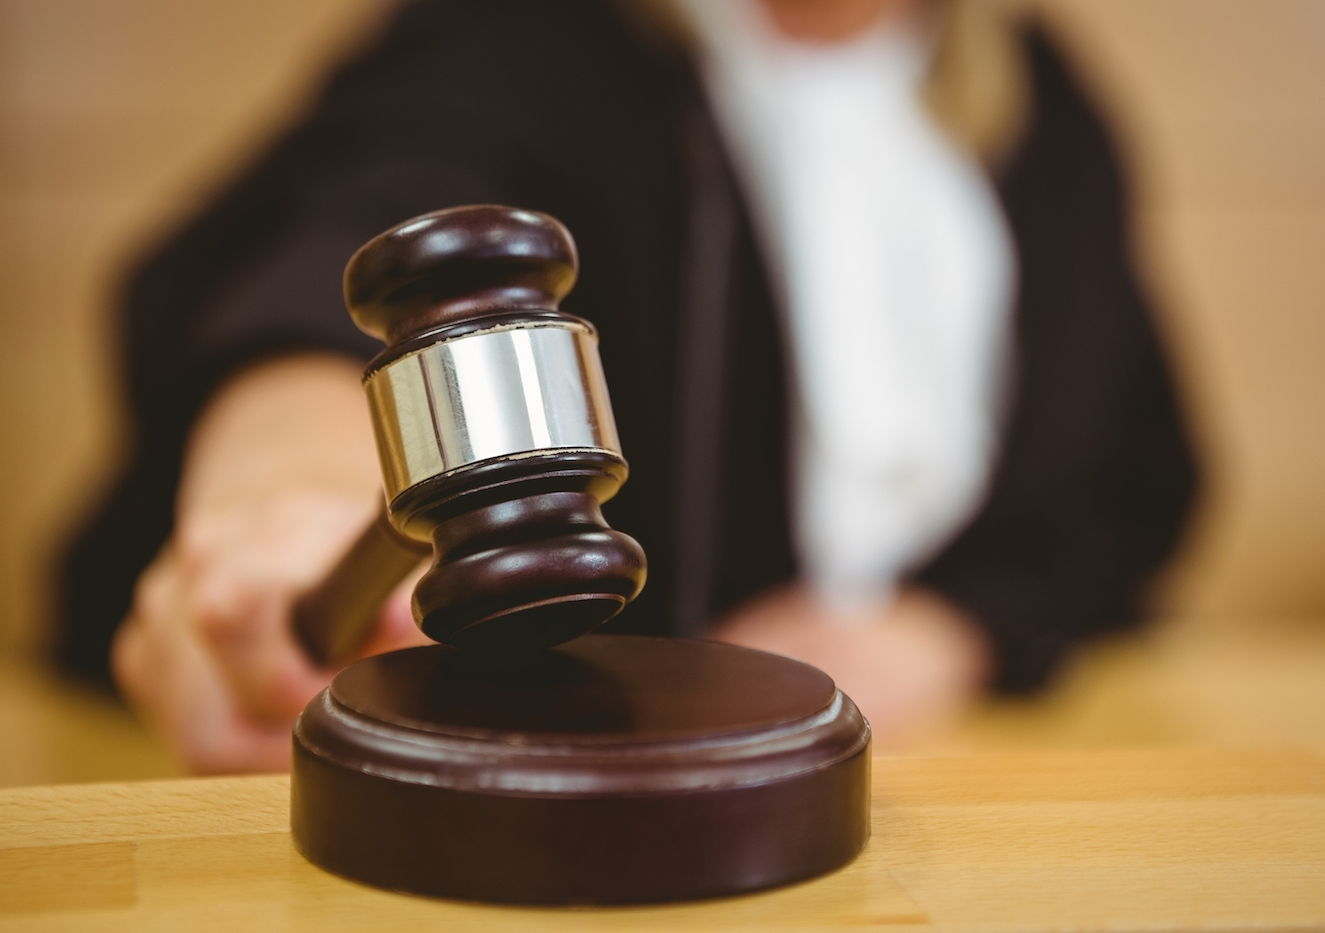 Female judges are more likely to be interrupted. Photo: Shutterstock.